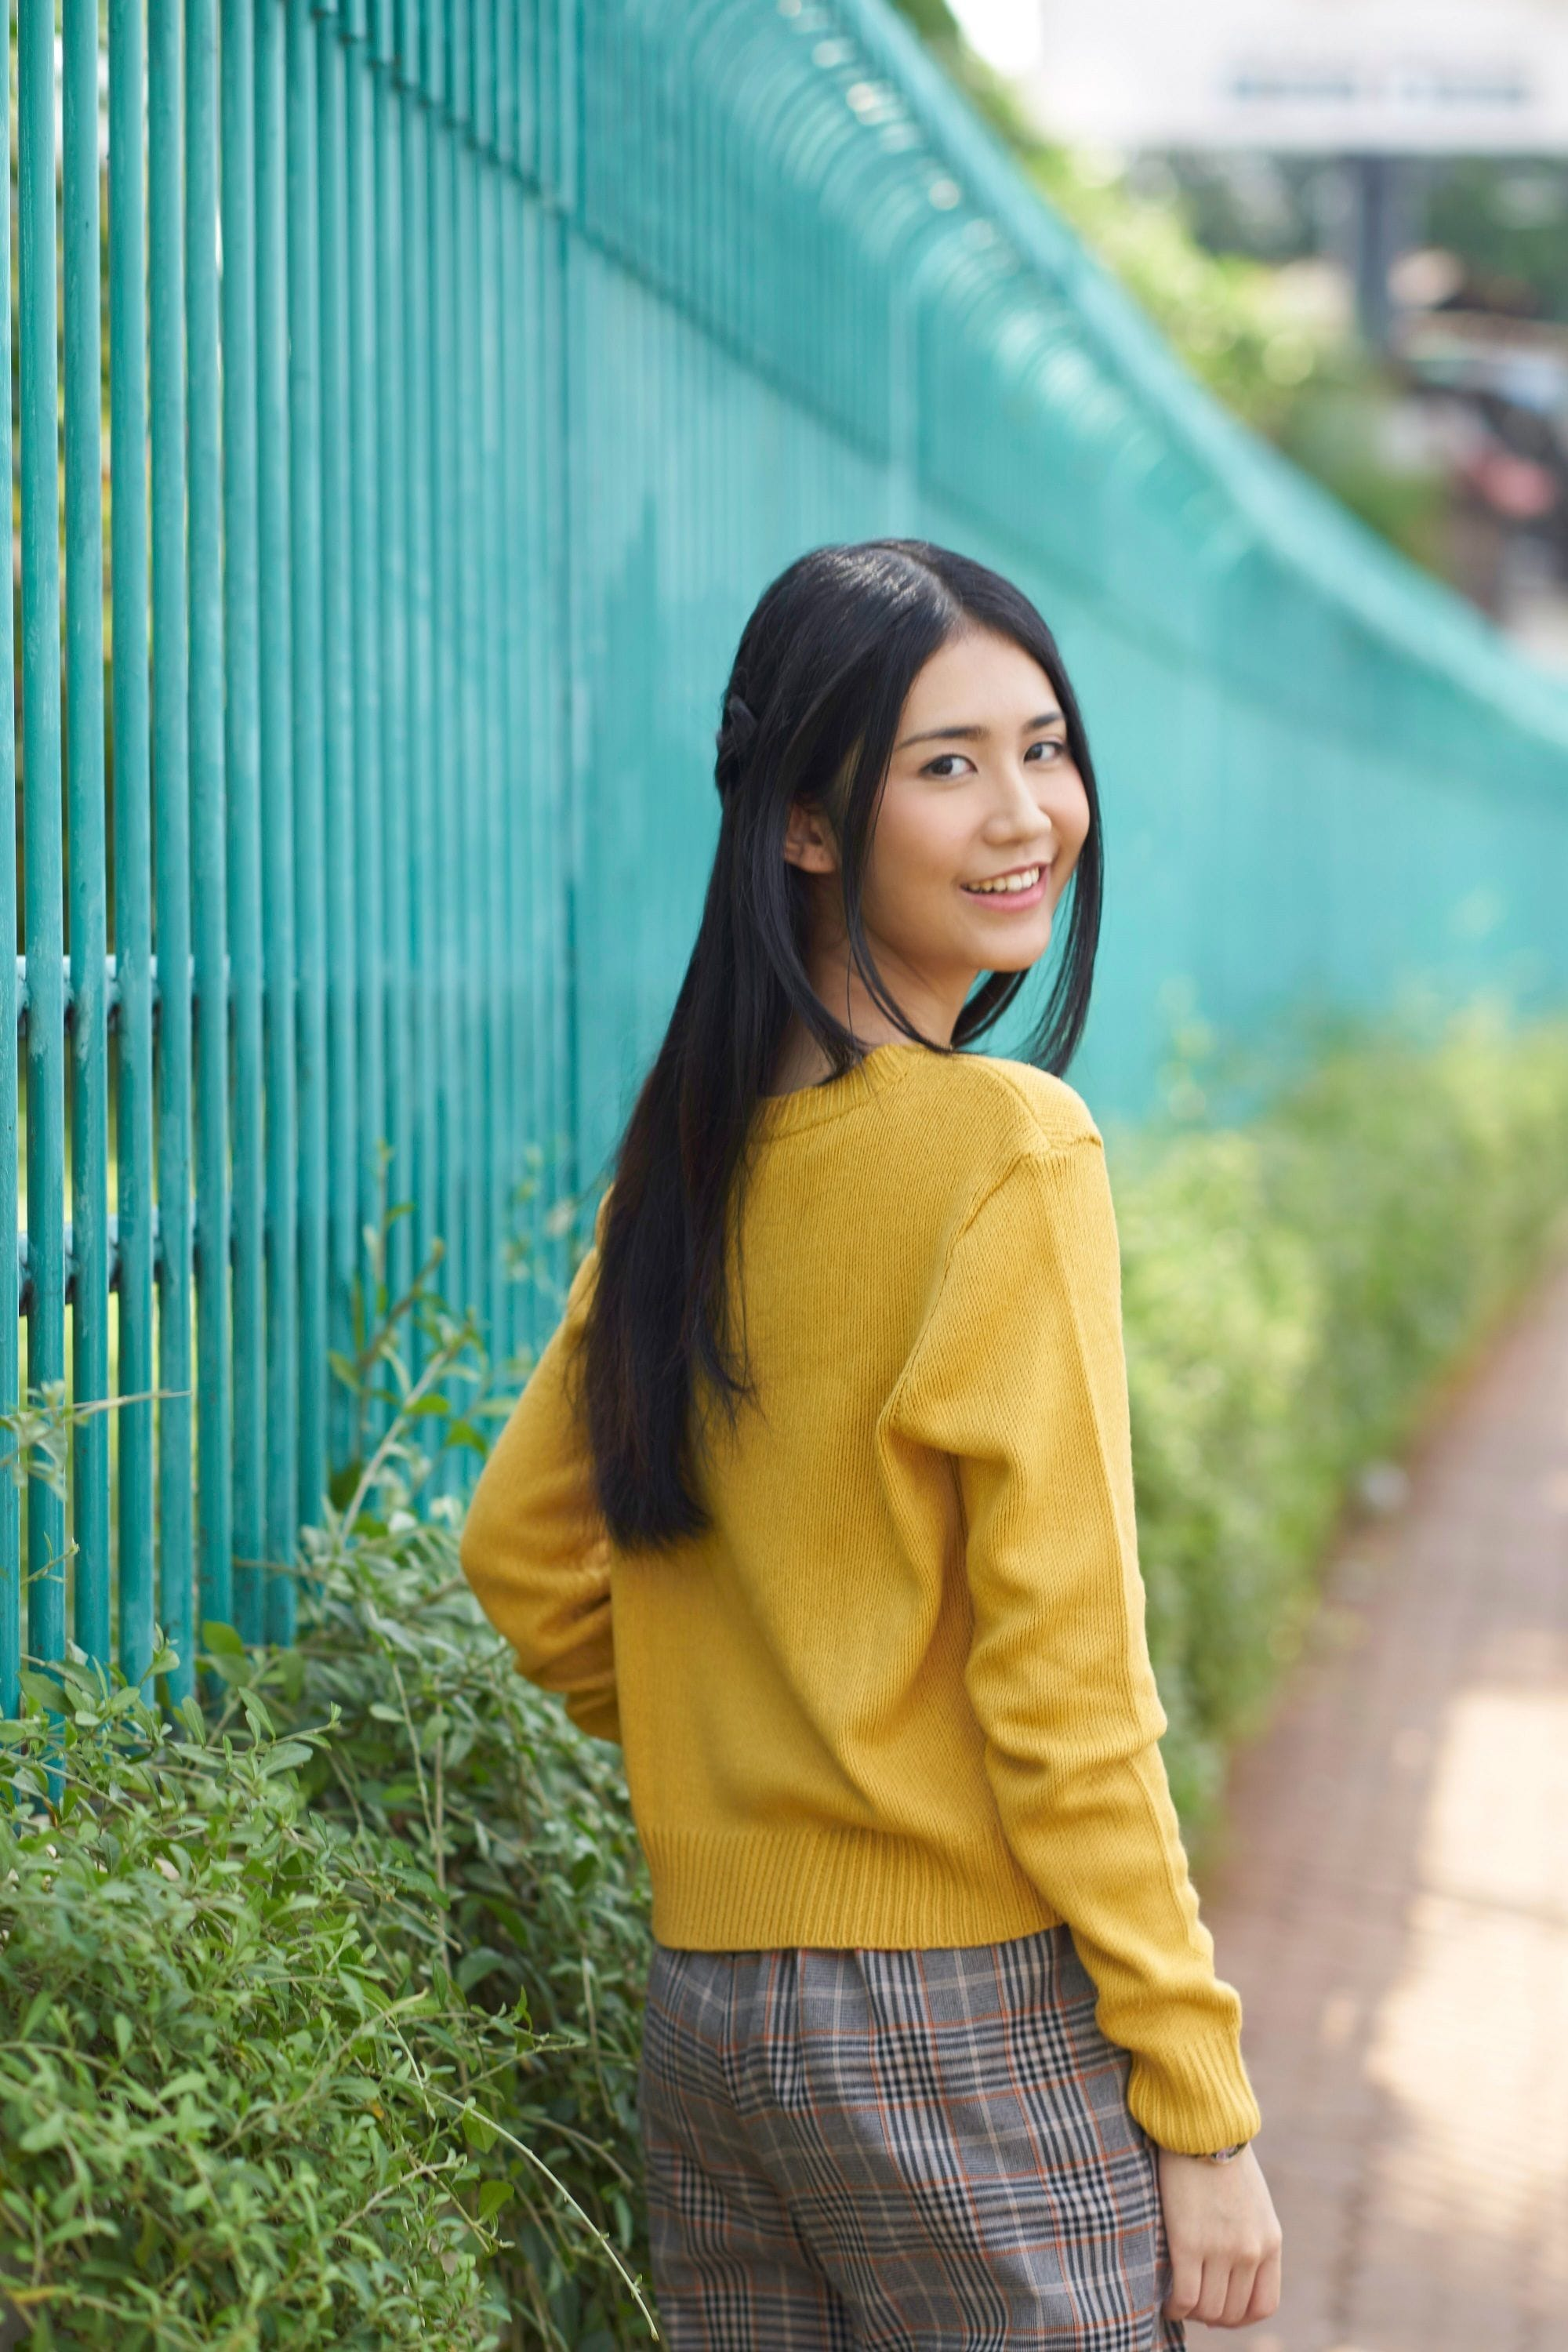 Benefits of aloe vera for the hair: asian woman with long, shine black hair, wearing a yellow sweater